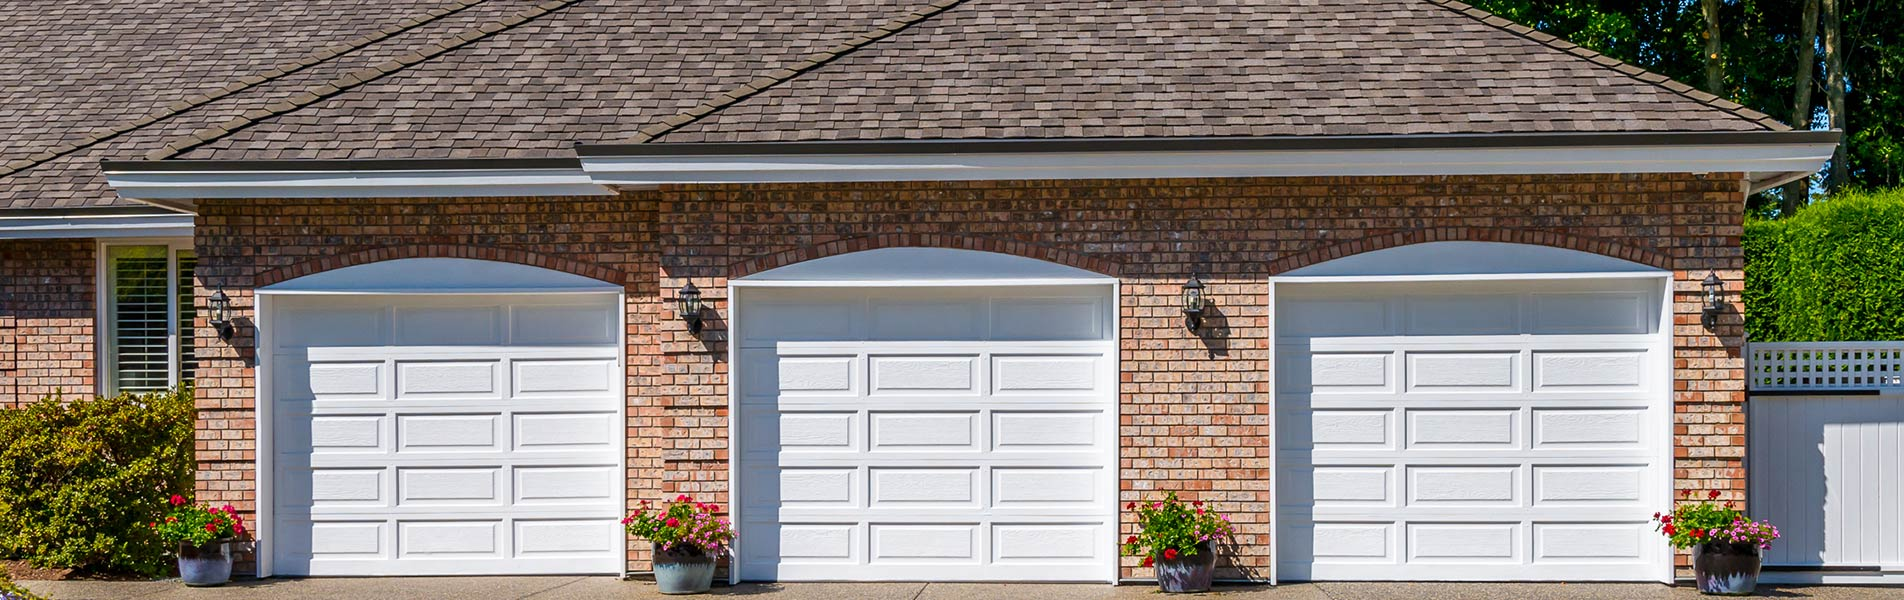 Eagle Garage Door Service Hometown, IL 708-247-1774